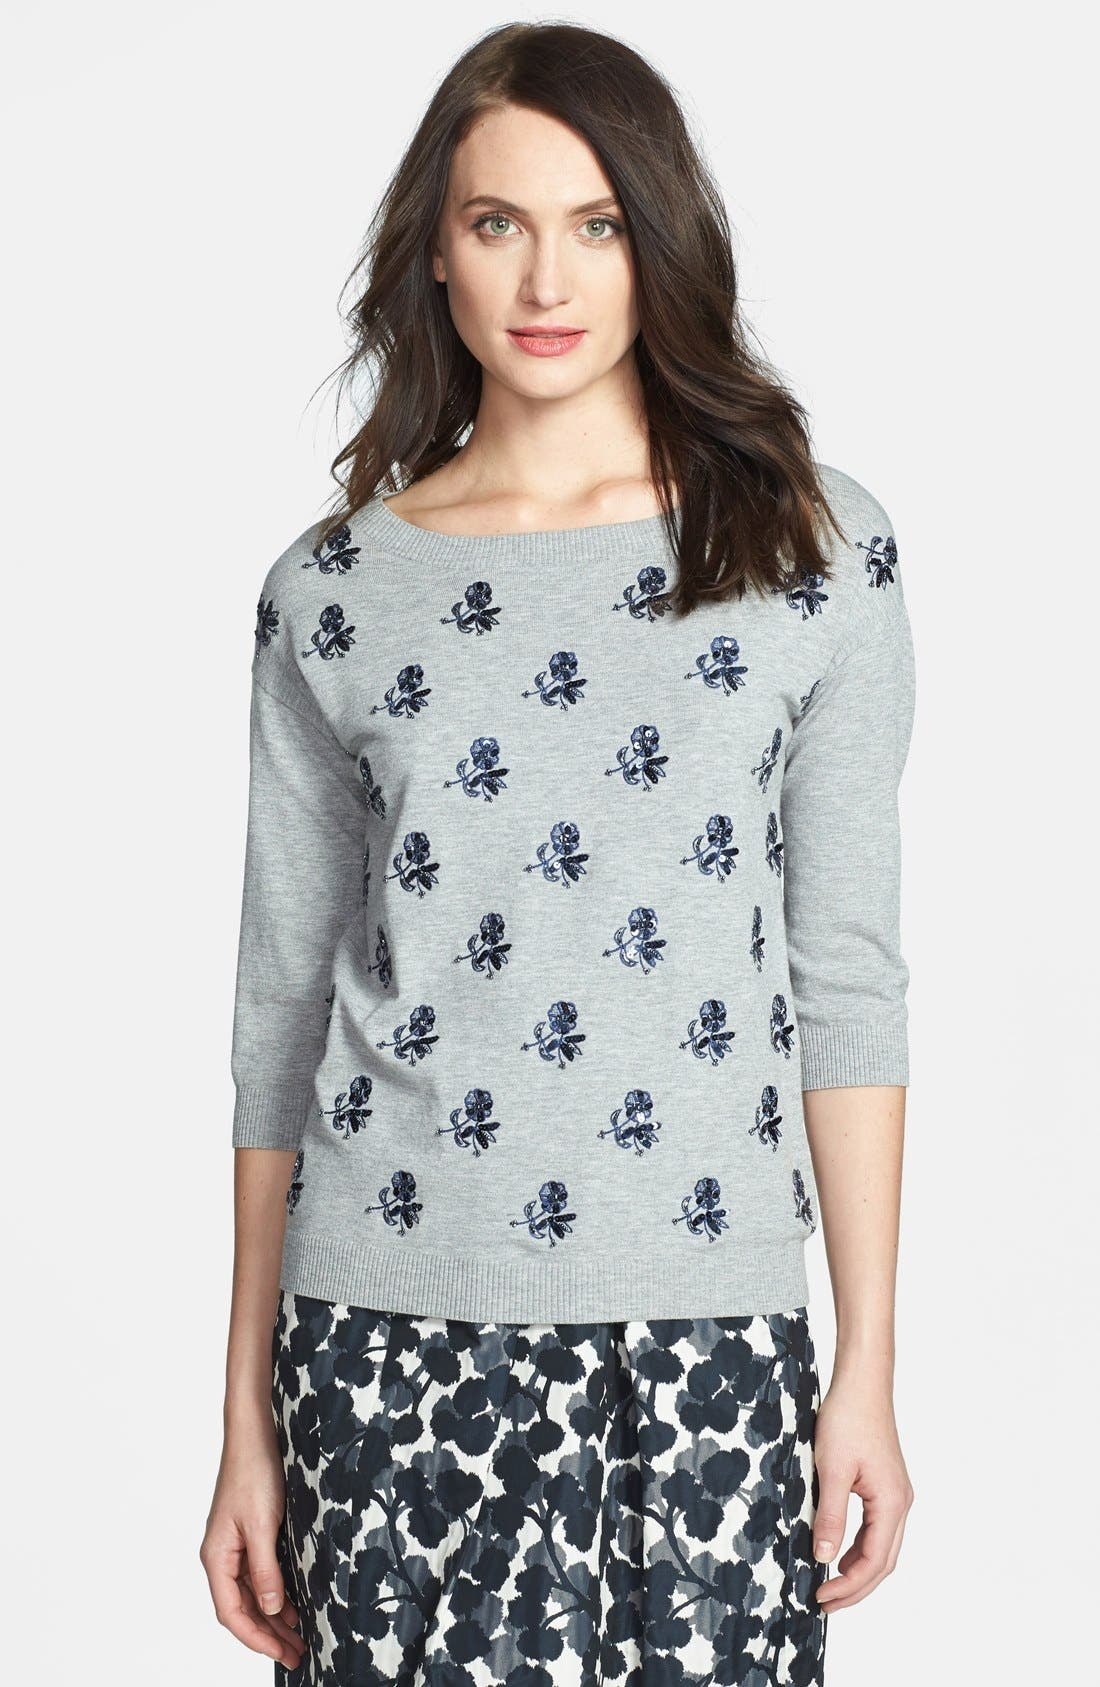 Alternate Image 1 Selected - Weekend Max Mara 'Pandora' Sequin Embroidered Sweater